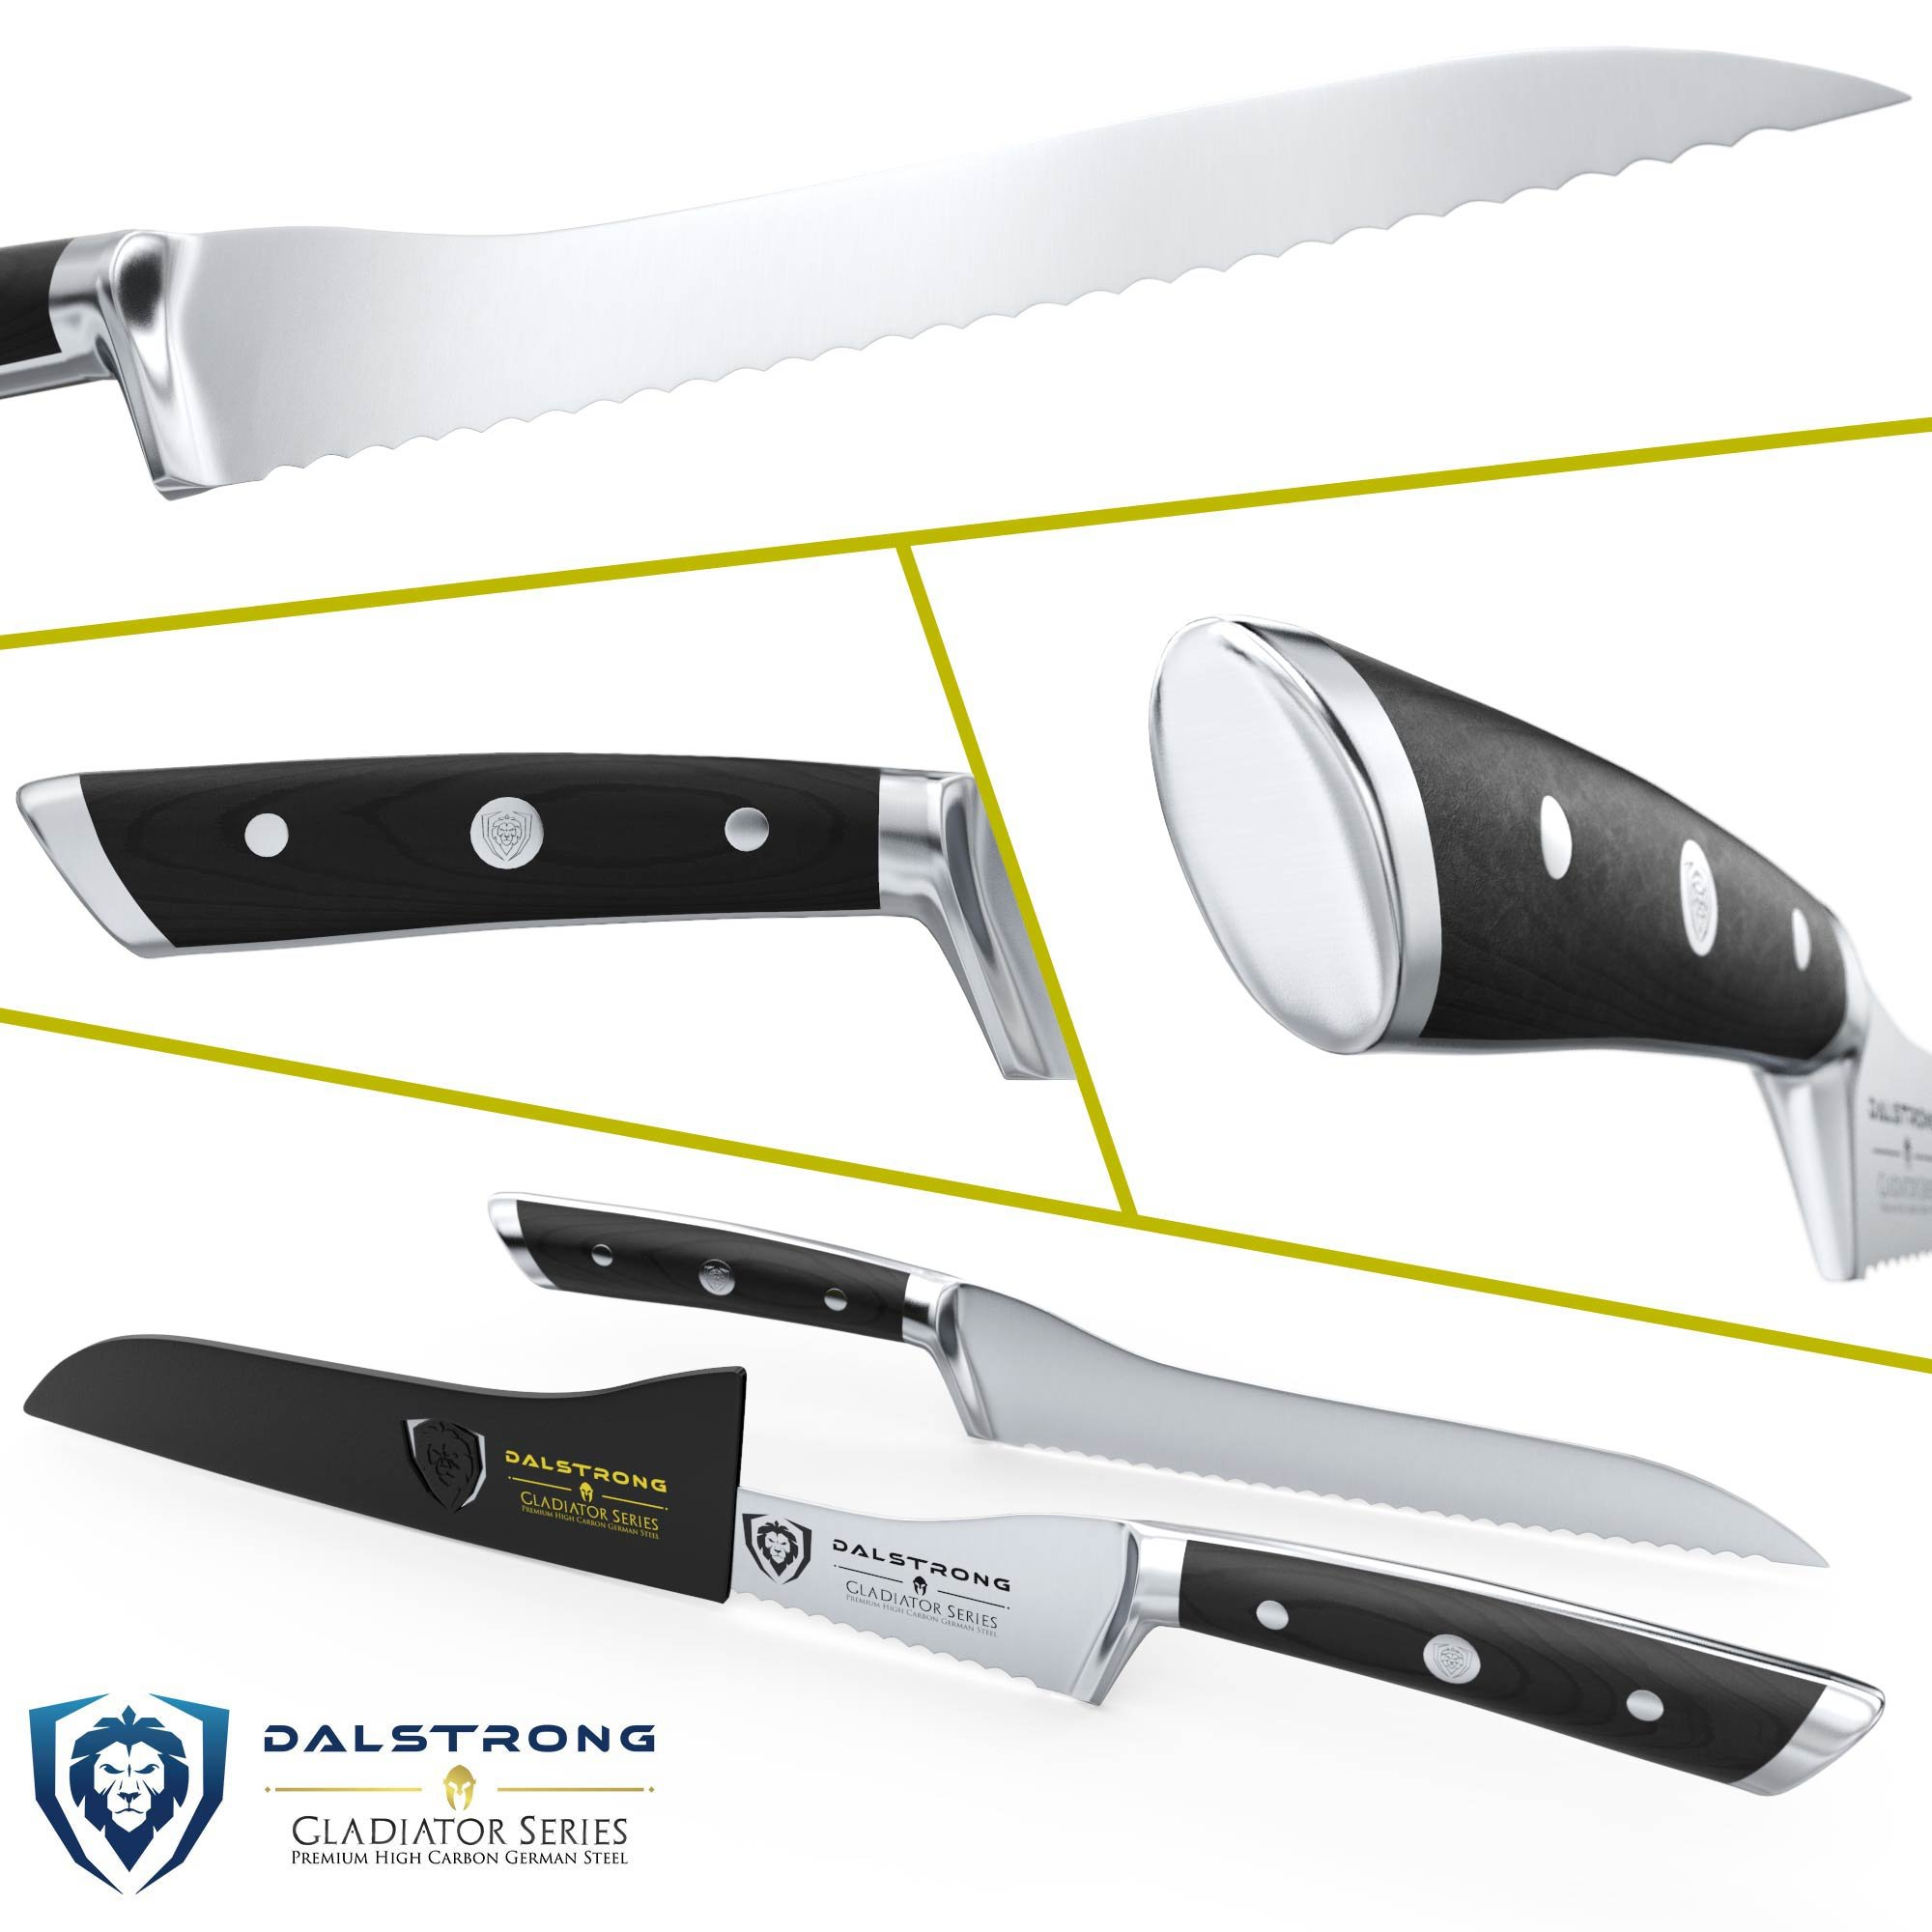 DALSTRONG Serrated Offset Bread & Deli Knife - Gladiator Series- 8''- German HC Steel - Guard Included by Dalstrong (Image #2)